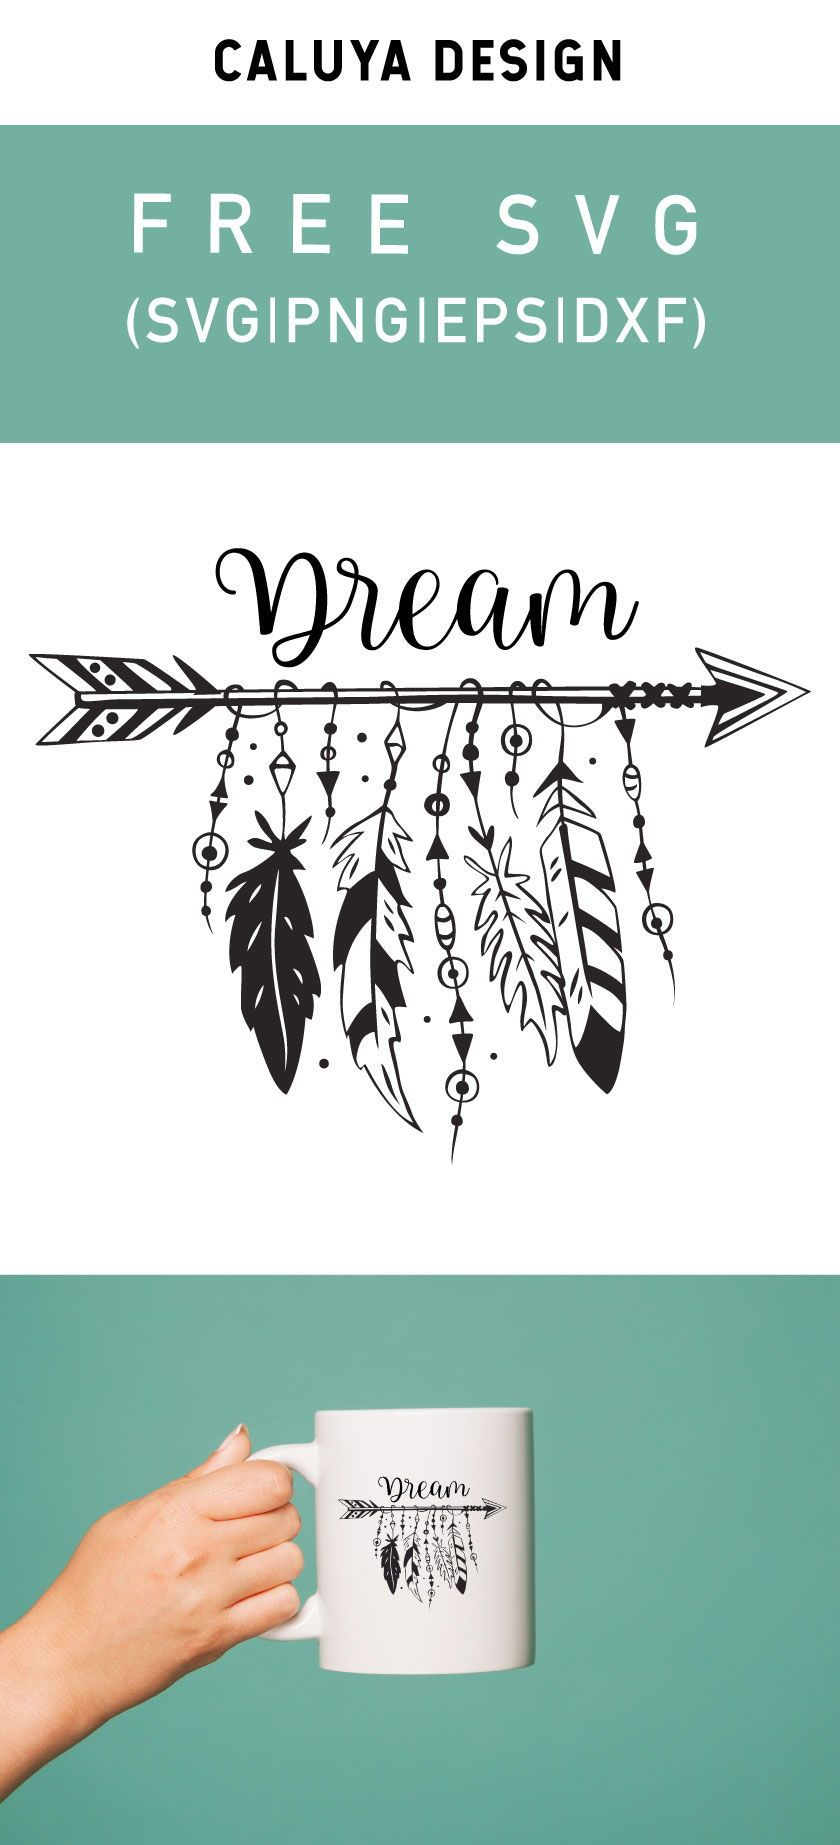 Free Boho Feather with Arrow SVG, PNG, EPS & DXF by Caluya Design